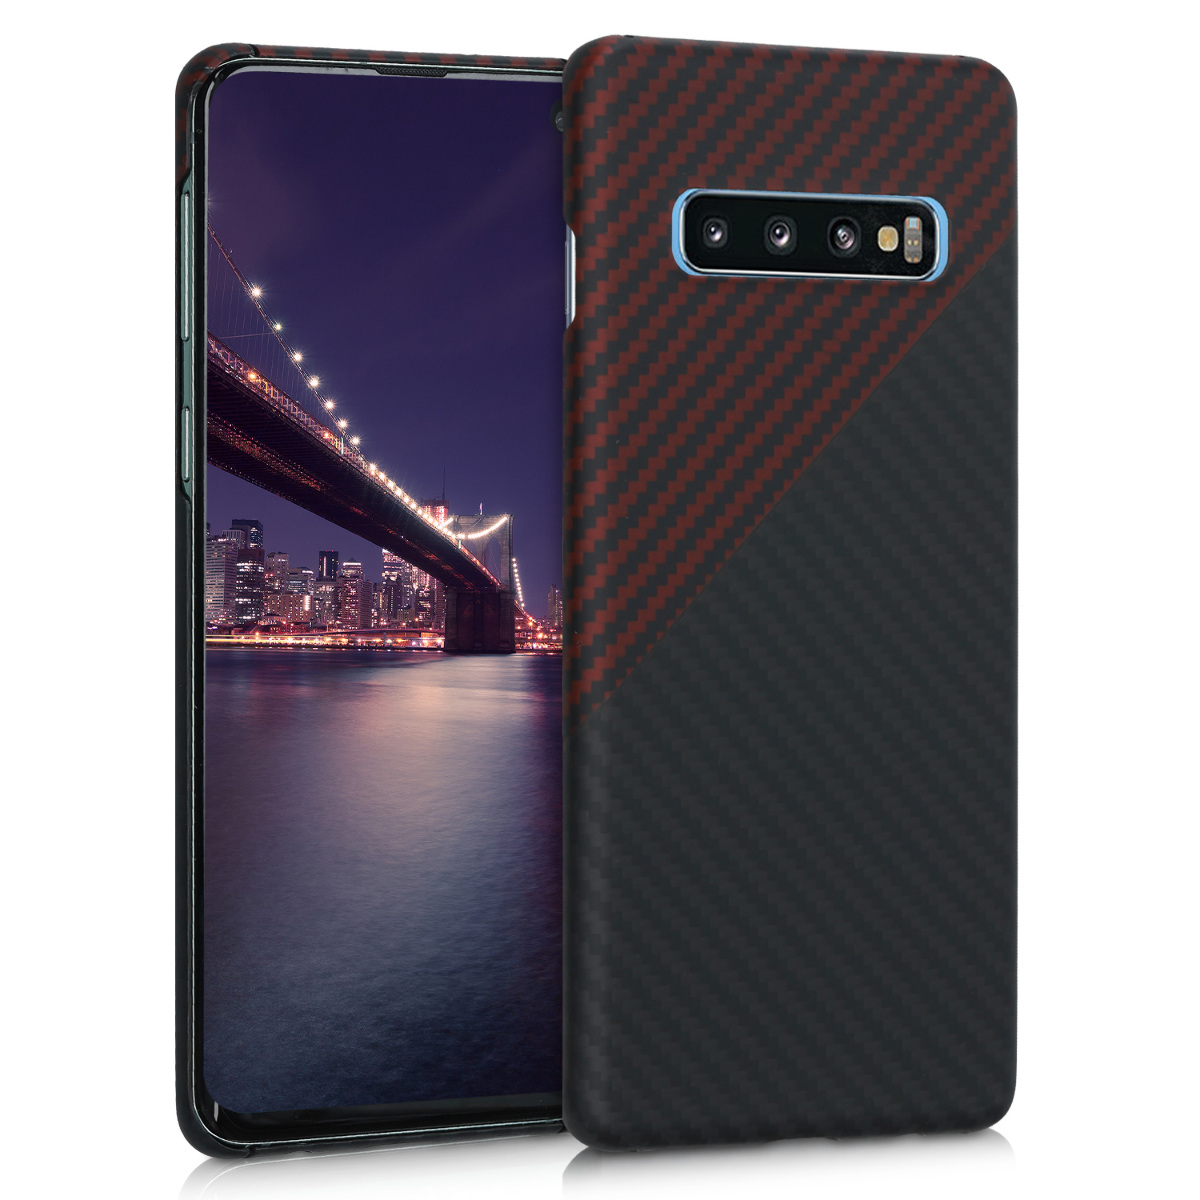 Kalibri Aramid Fiber Body - Σκληρή Θήκη Samsung Galaxy S10 - Red Matte / Black Matte (47932.51)